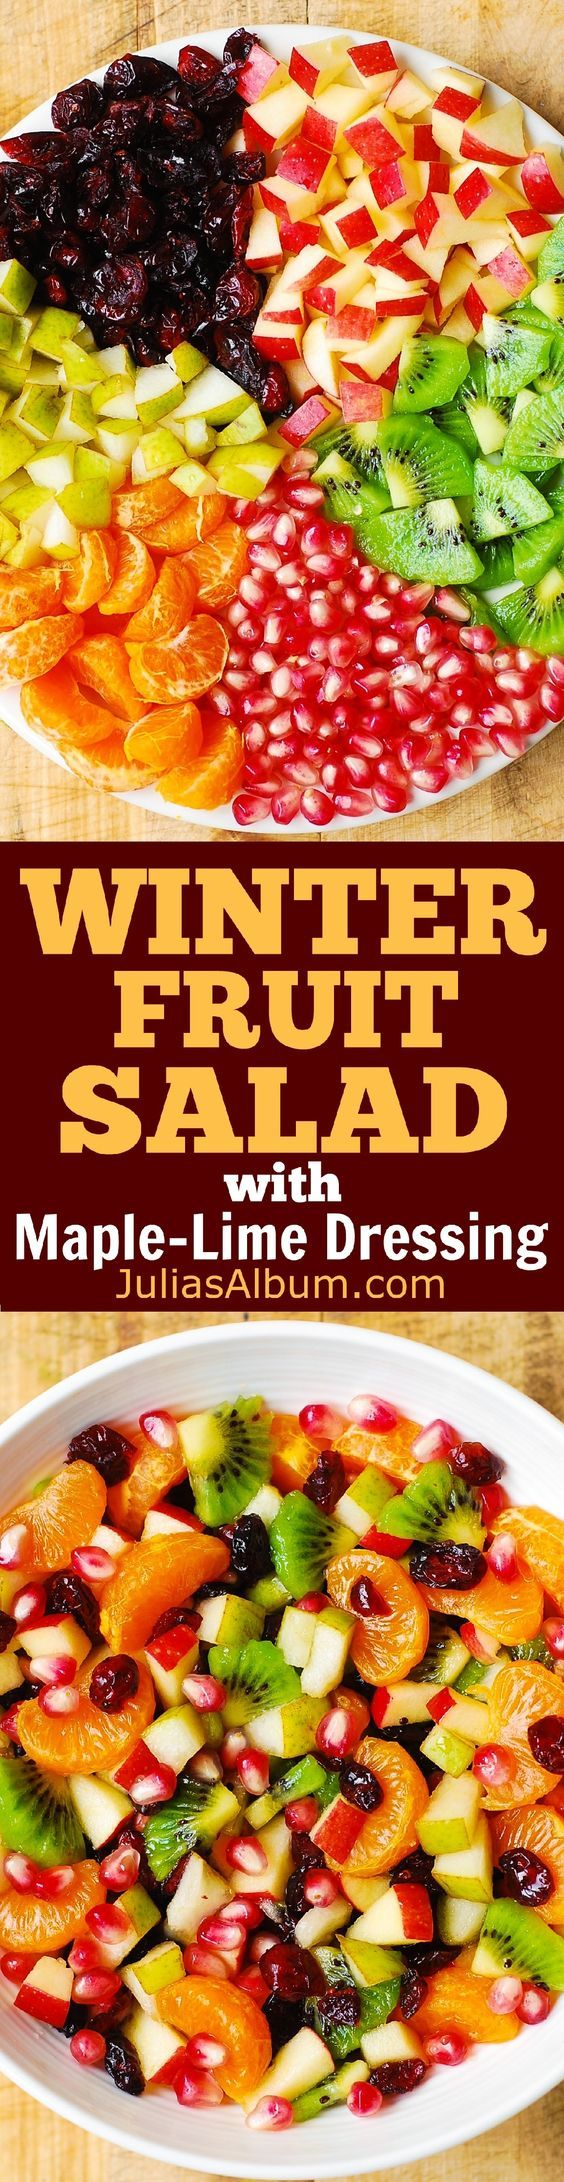 Winter Fruit Salad with Maple-Lime Dressing - healthy gluten free salad!Winter Fruit Salad with Maple-Lime Dressing - healthy gluten free salad!